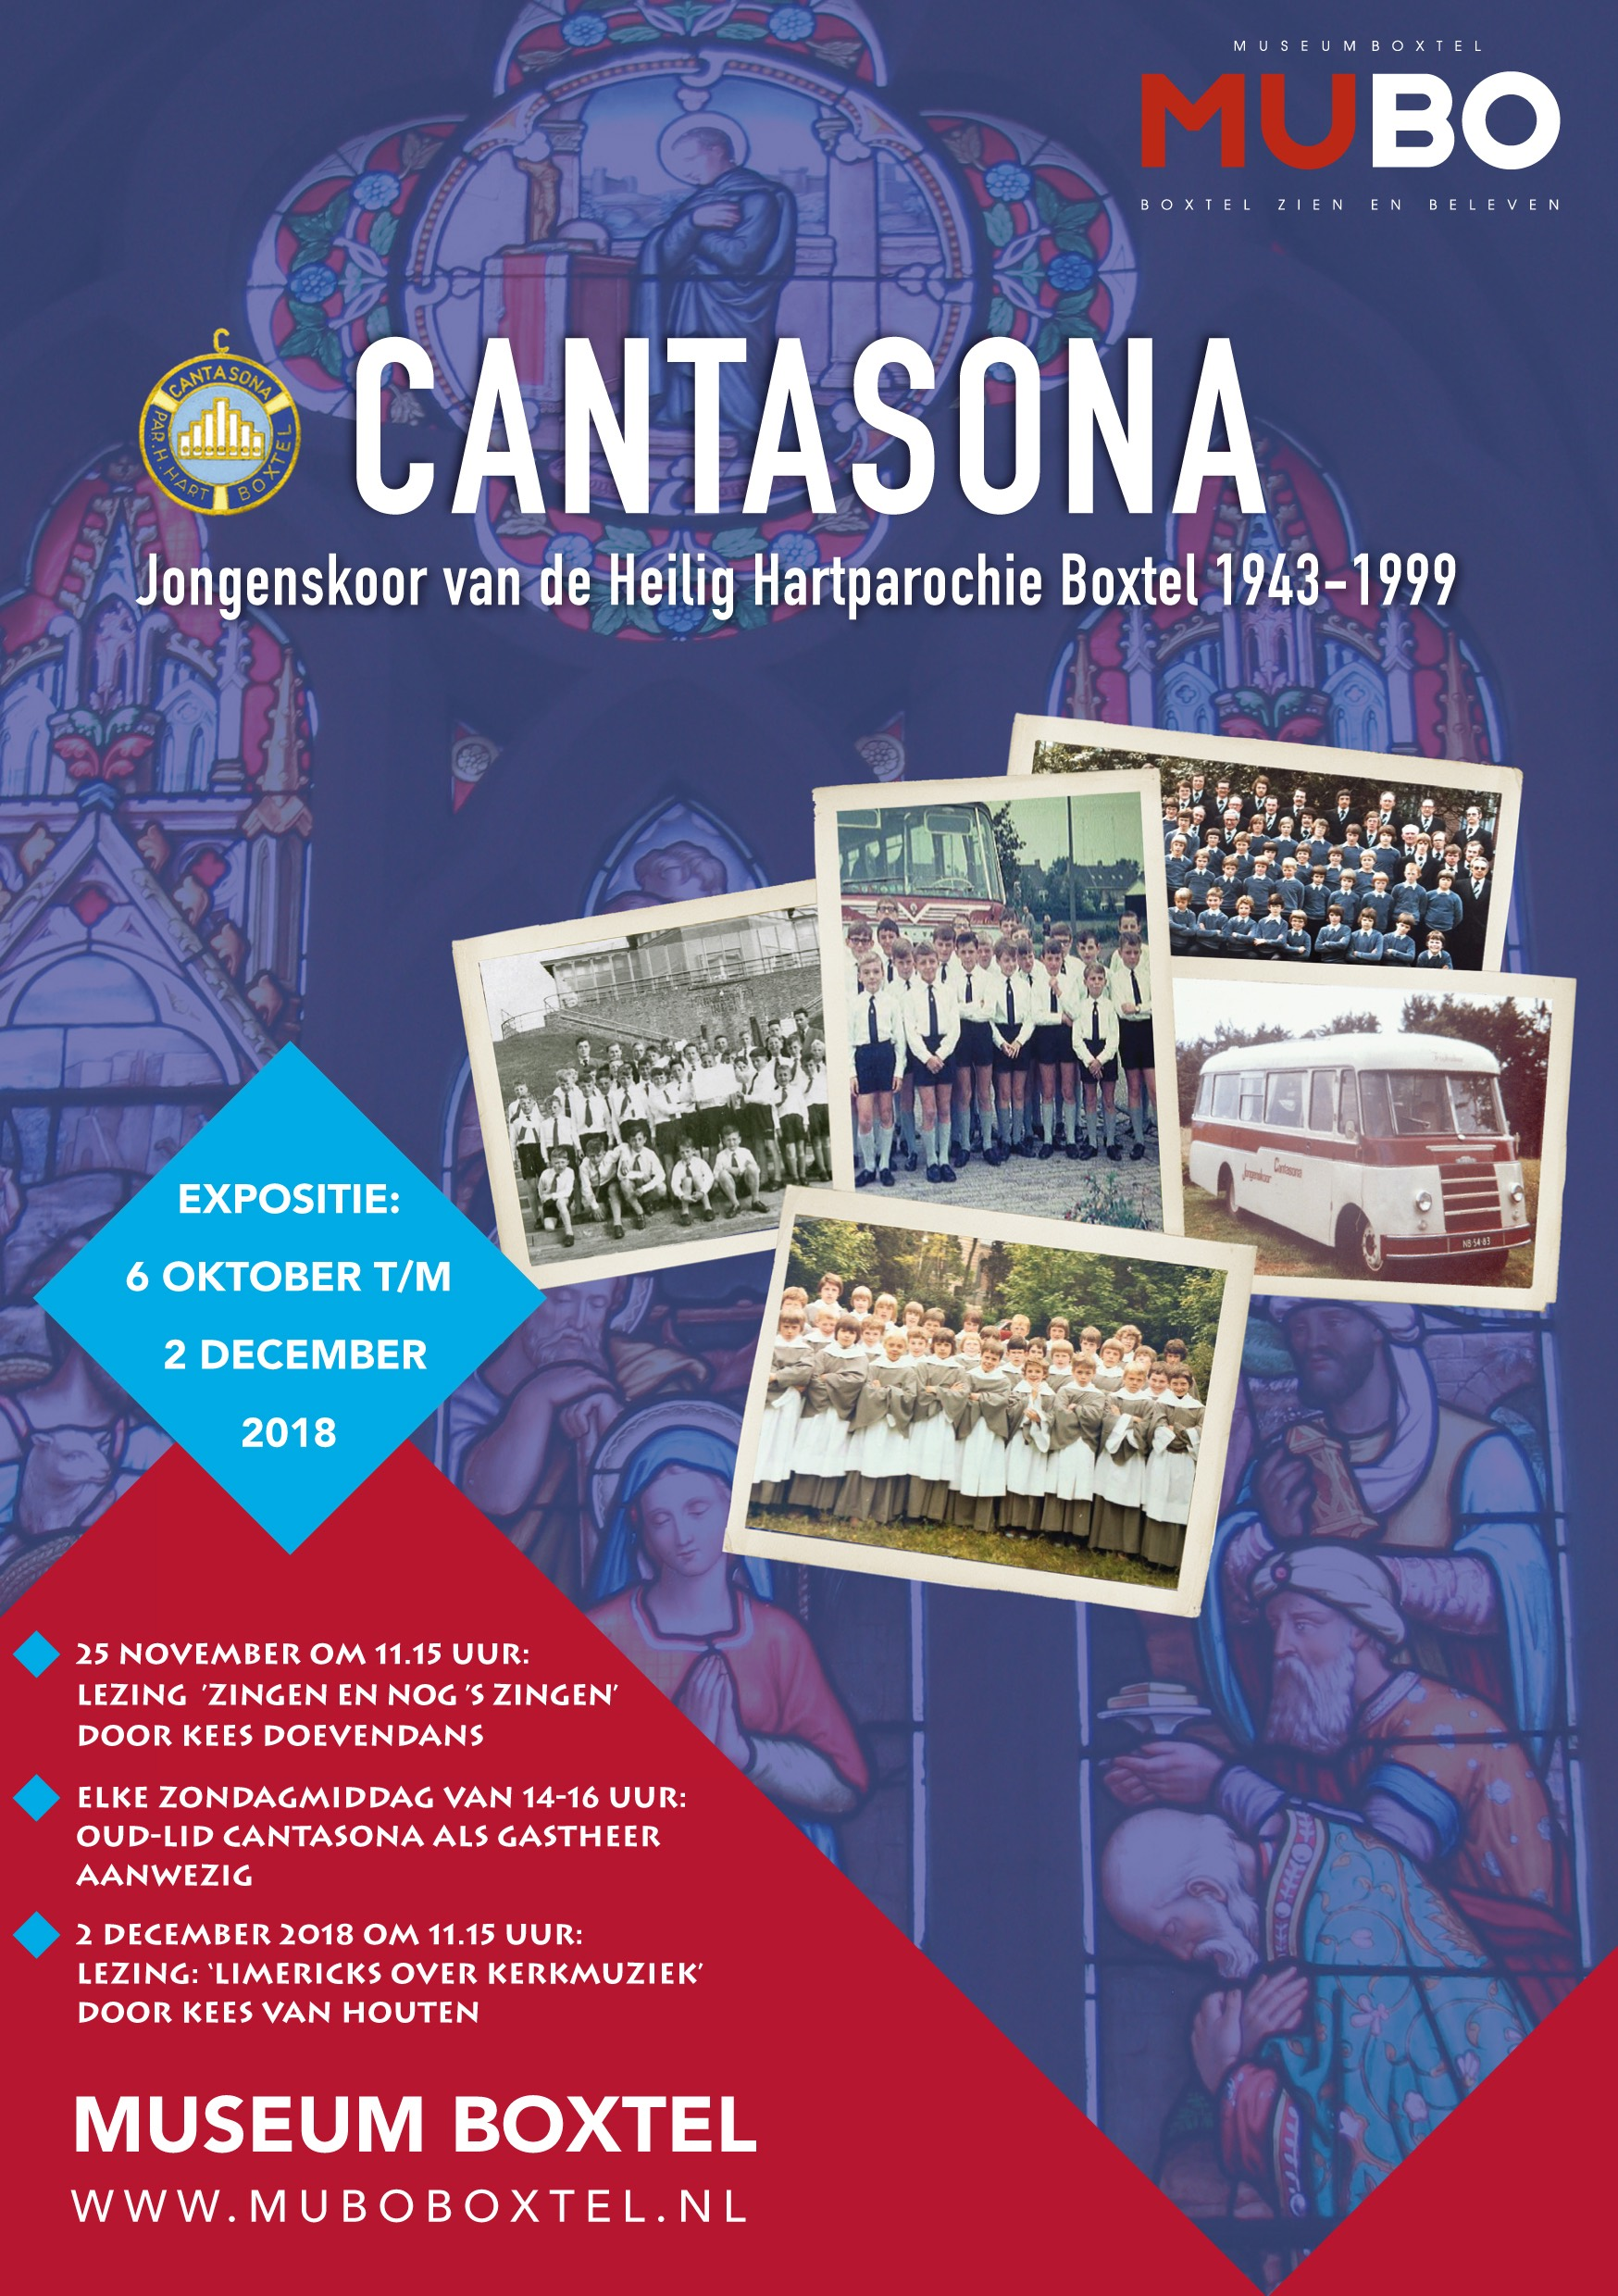 2018 Folder expositie Cantasona